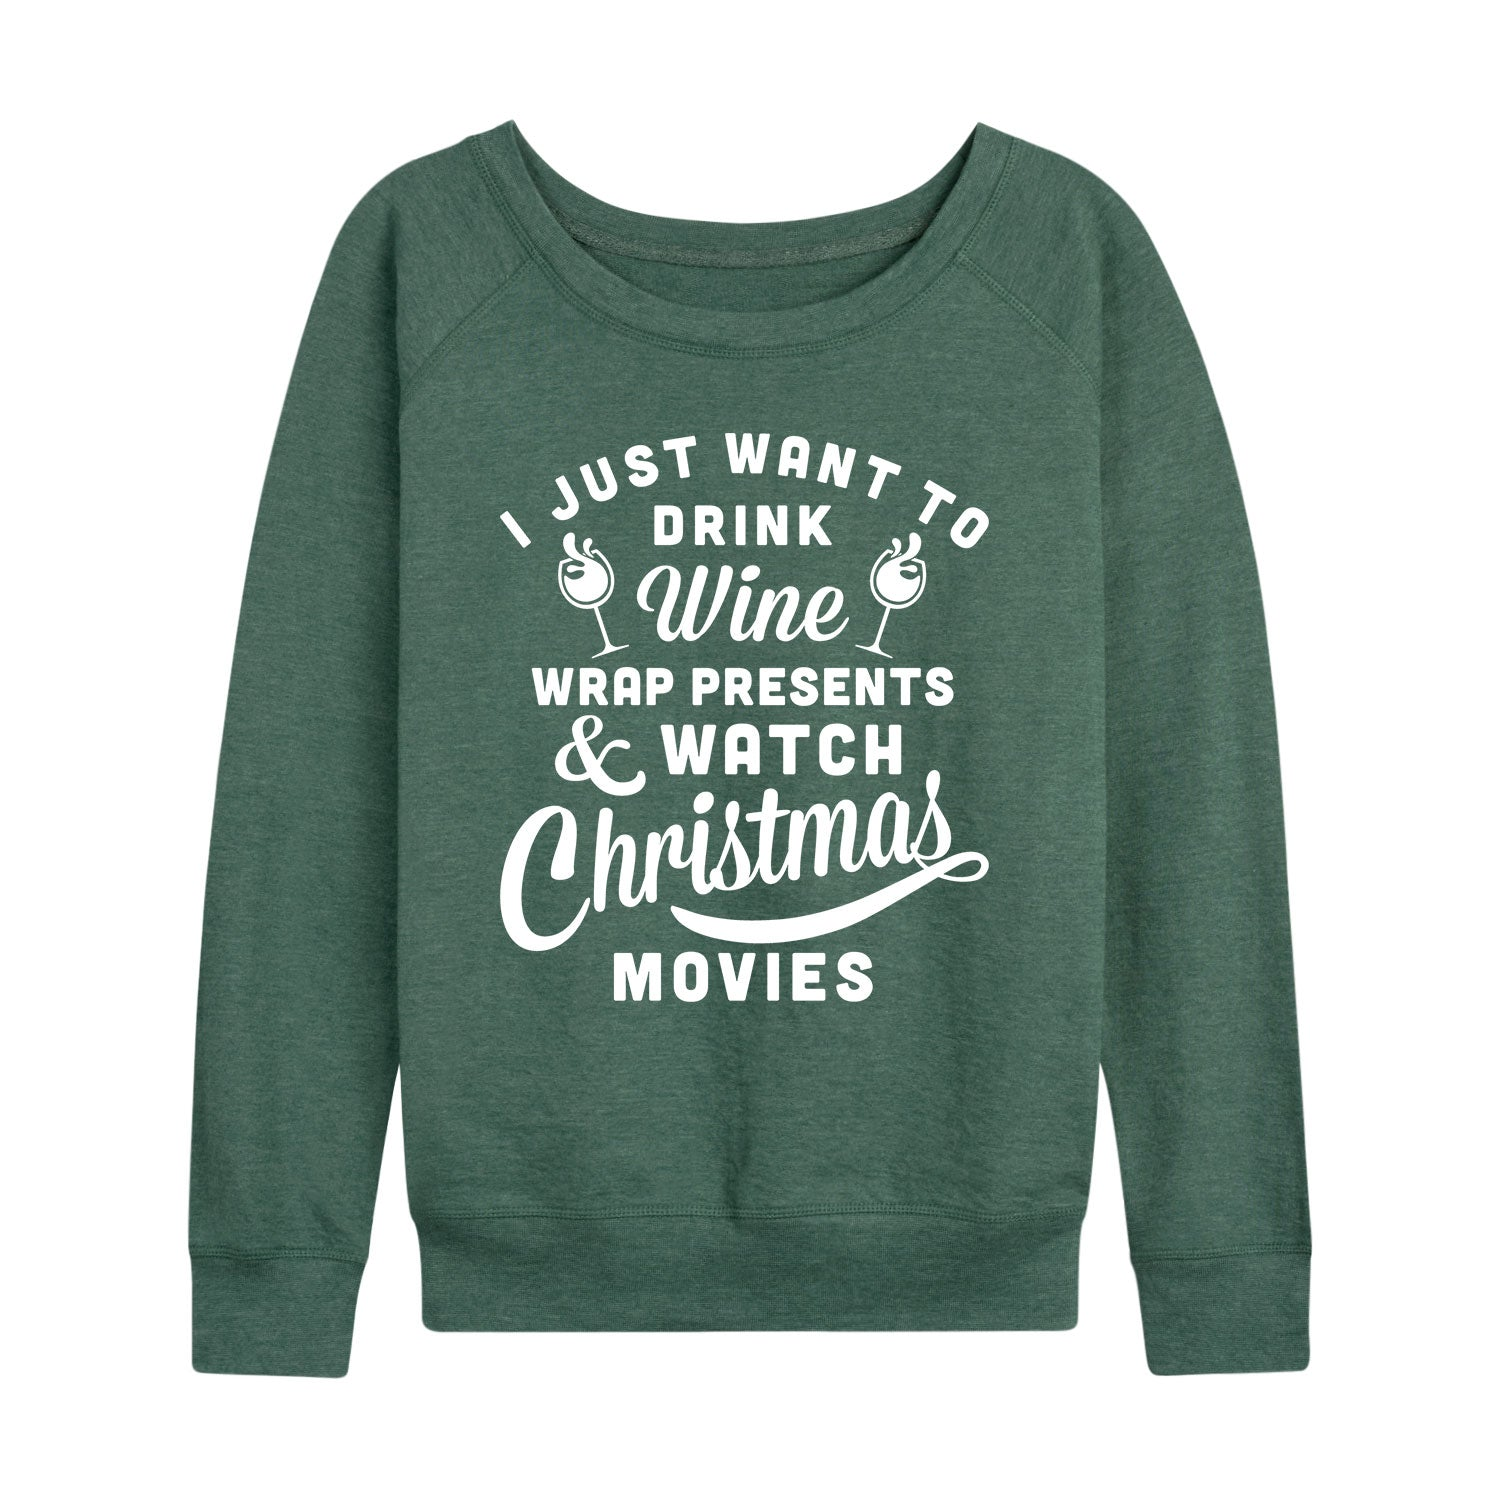 Wine Presents Christmas Movies - Women's Slouchy